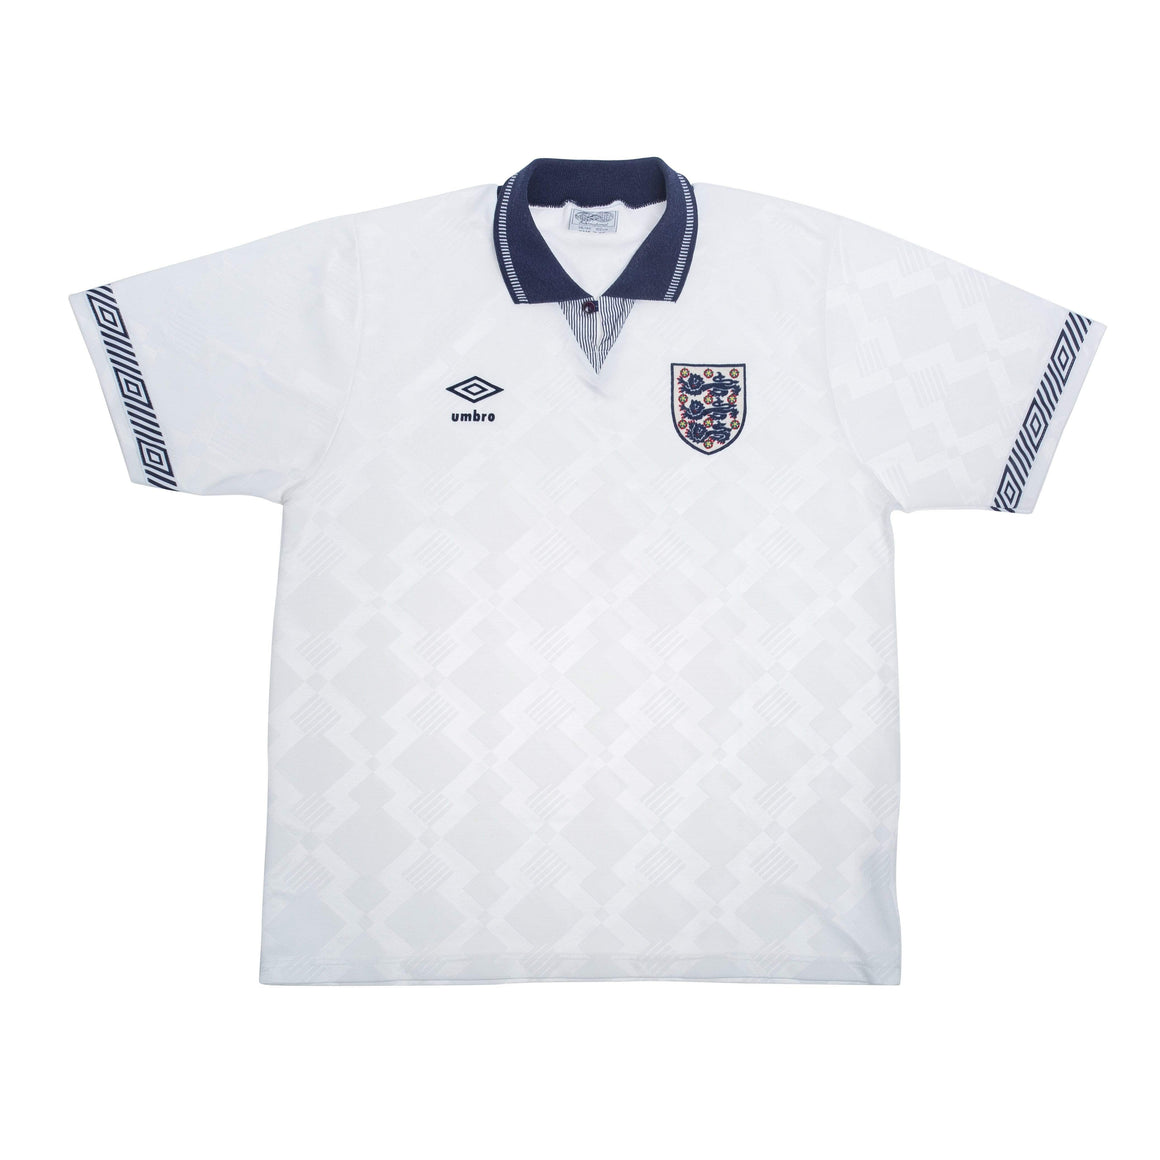 1990 England Home Football Shirt M Excellent - Football Shirt Collective